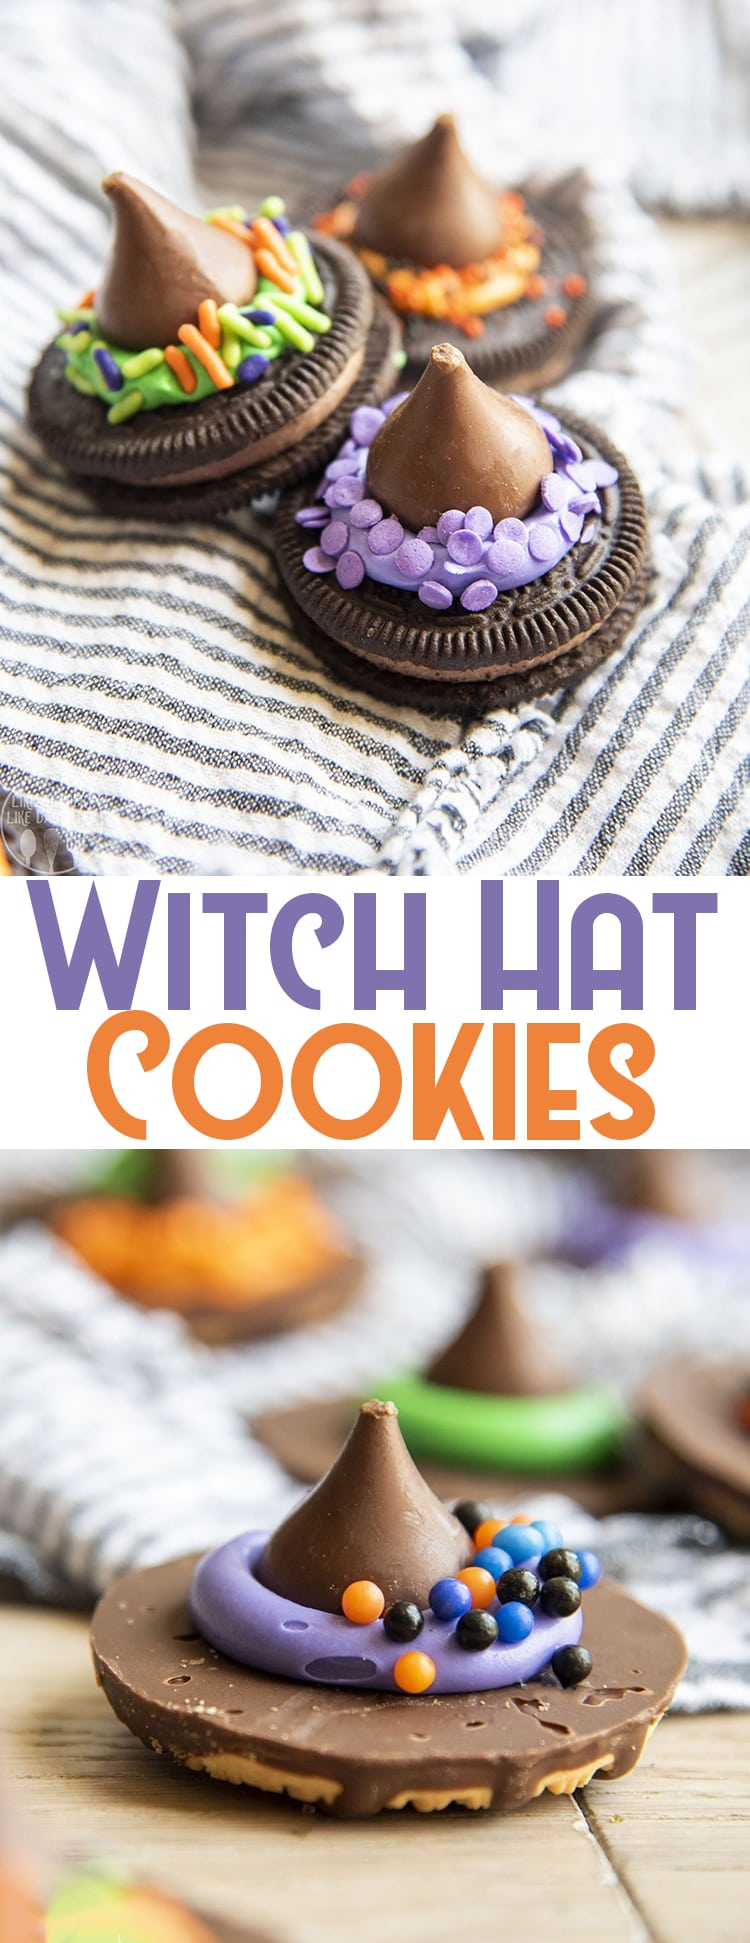 These adorable witch hat cookies are so perfect for celebrating Halloween! They're only four ingredients and so adorable to make and eat!